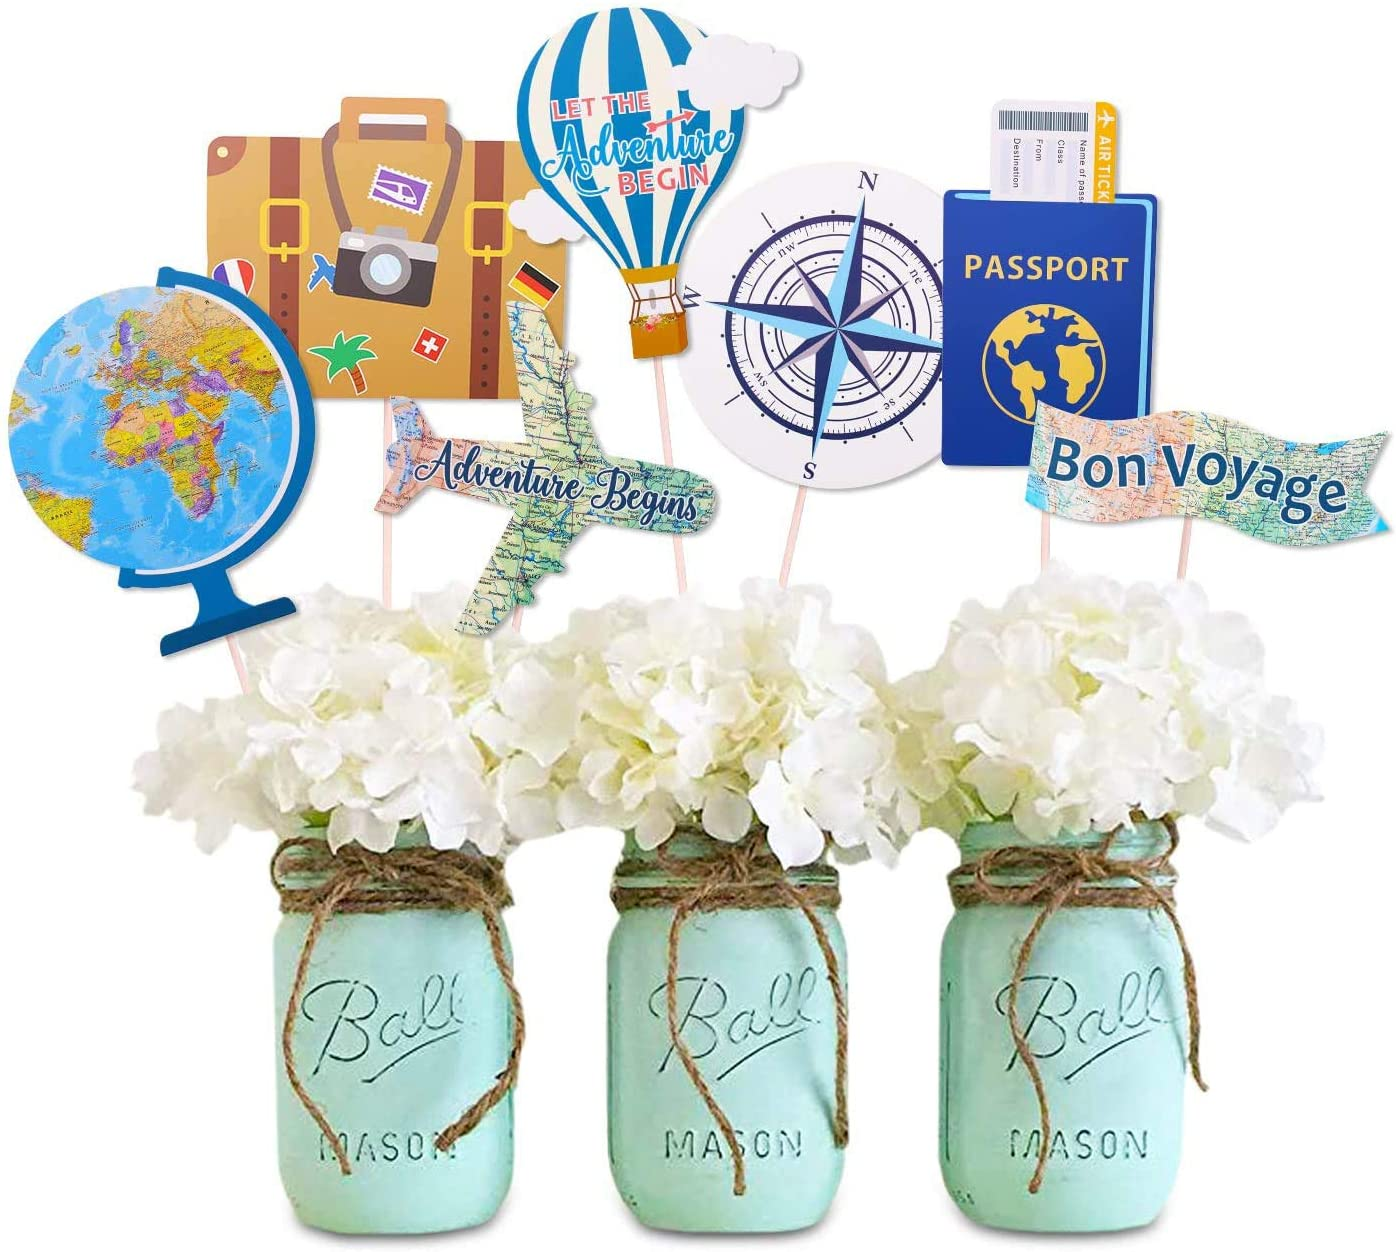 Let the Adventure Begin Centerpieces Travel Themed Centerpieces Sticks Adventure Awaits Bon Voyage Farewell World Map Retirement Graduation Party Photo Booth Props Set of 21